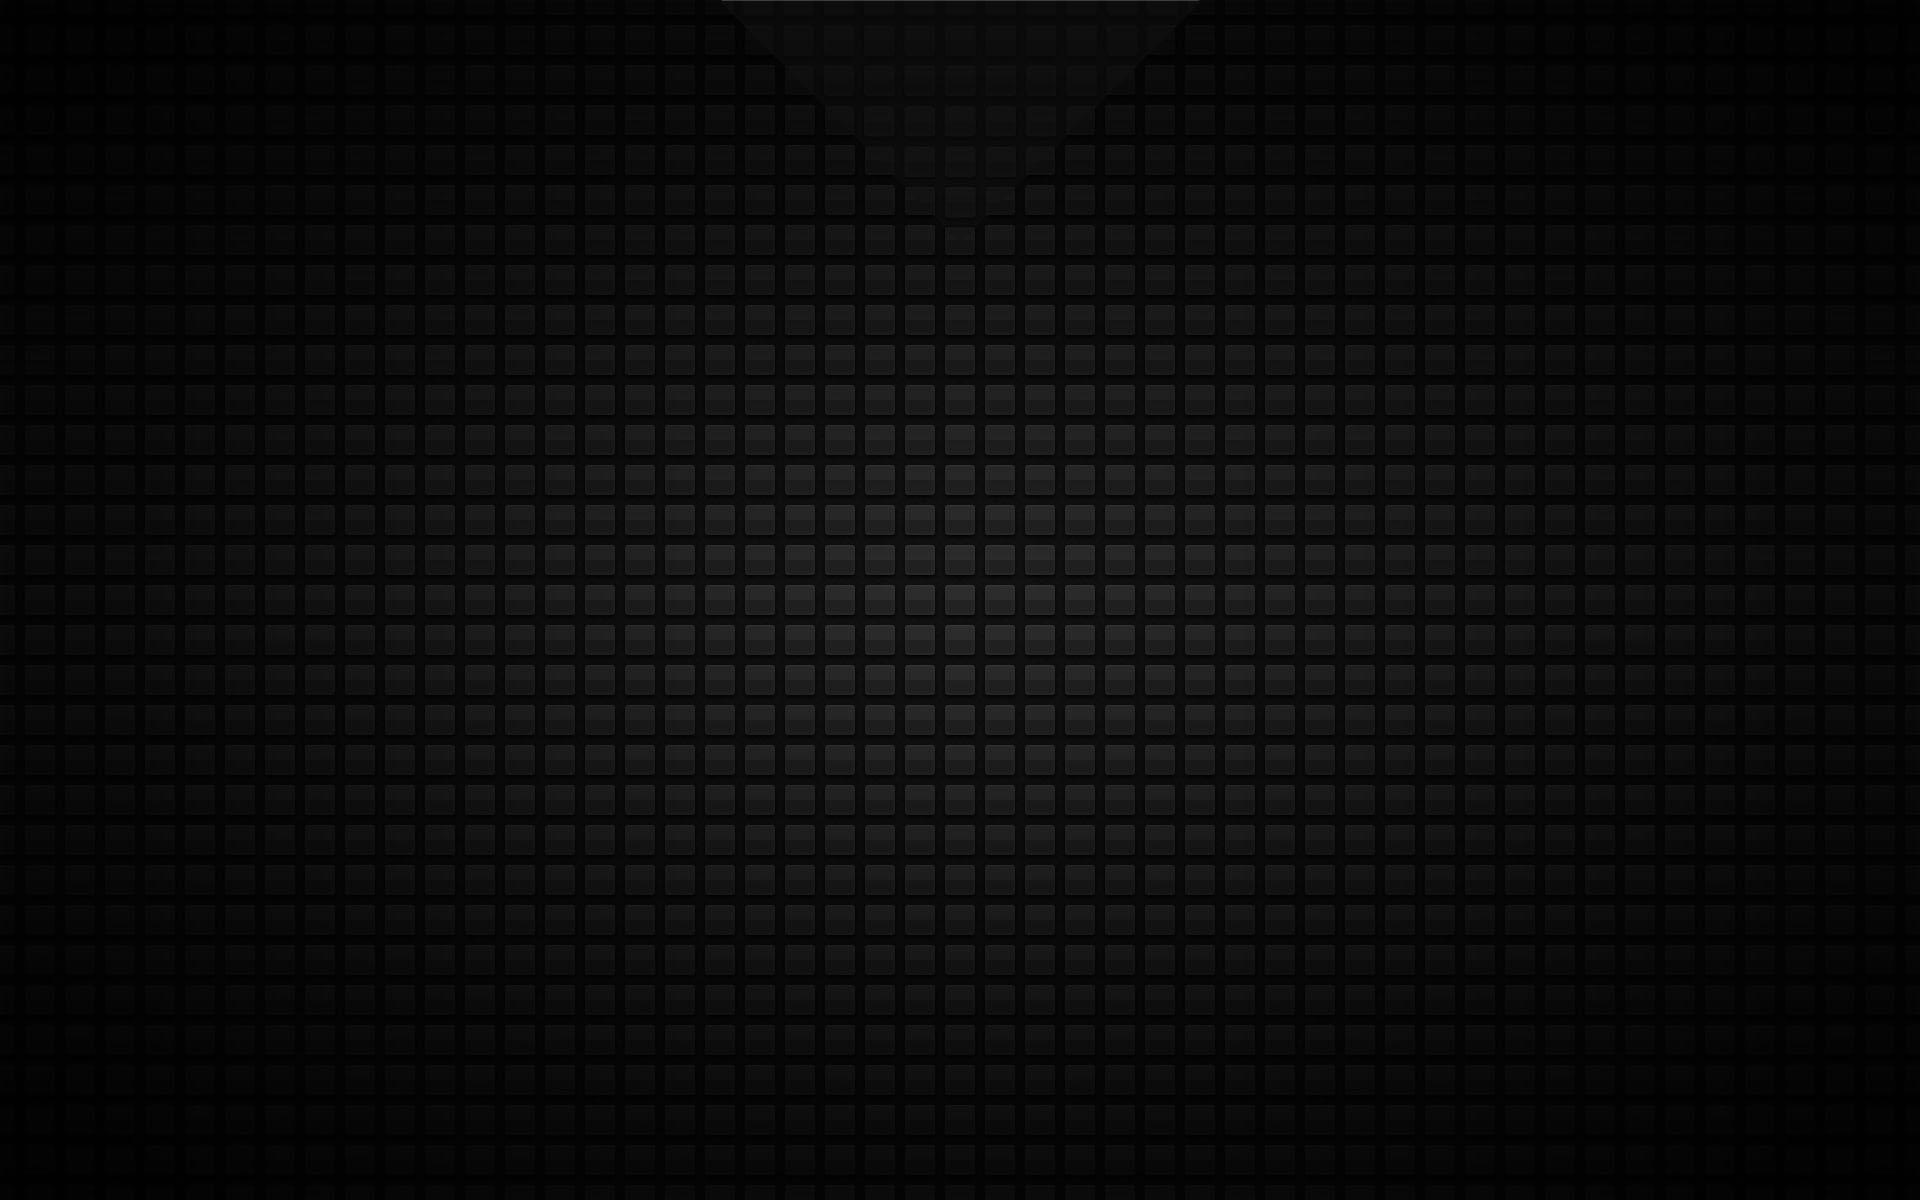 Squares black abstract texture for free use